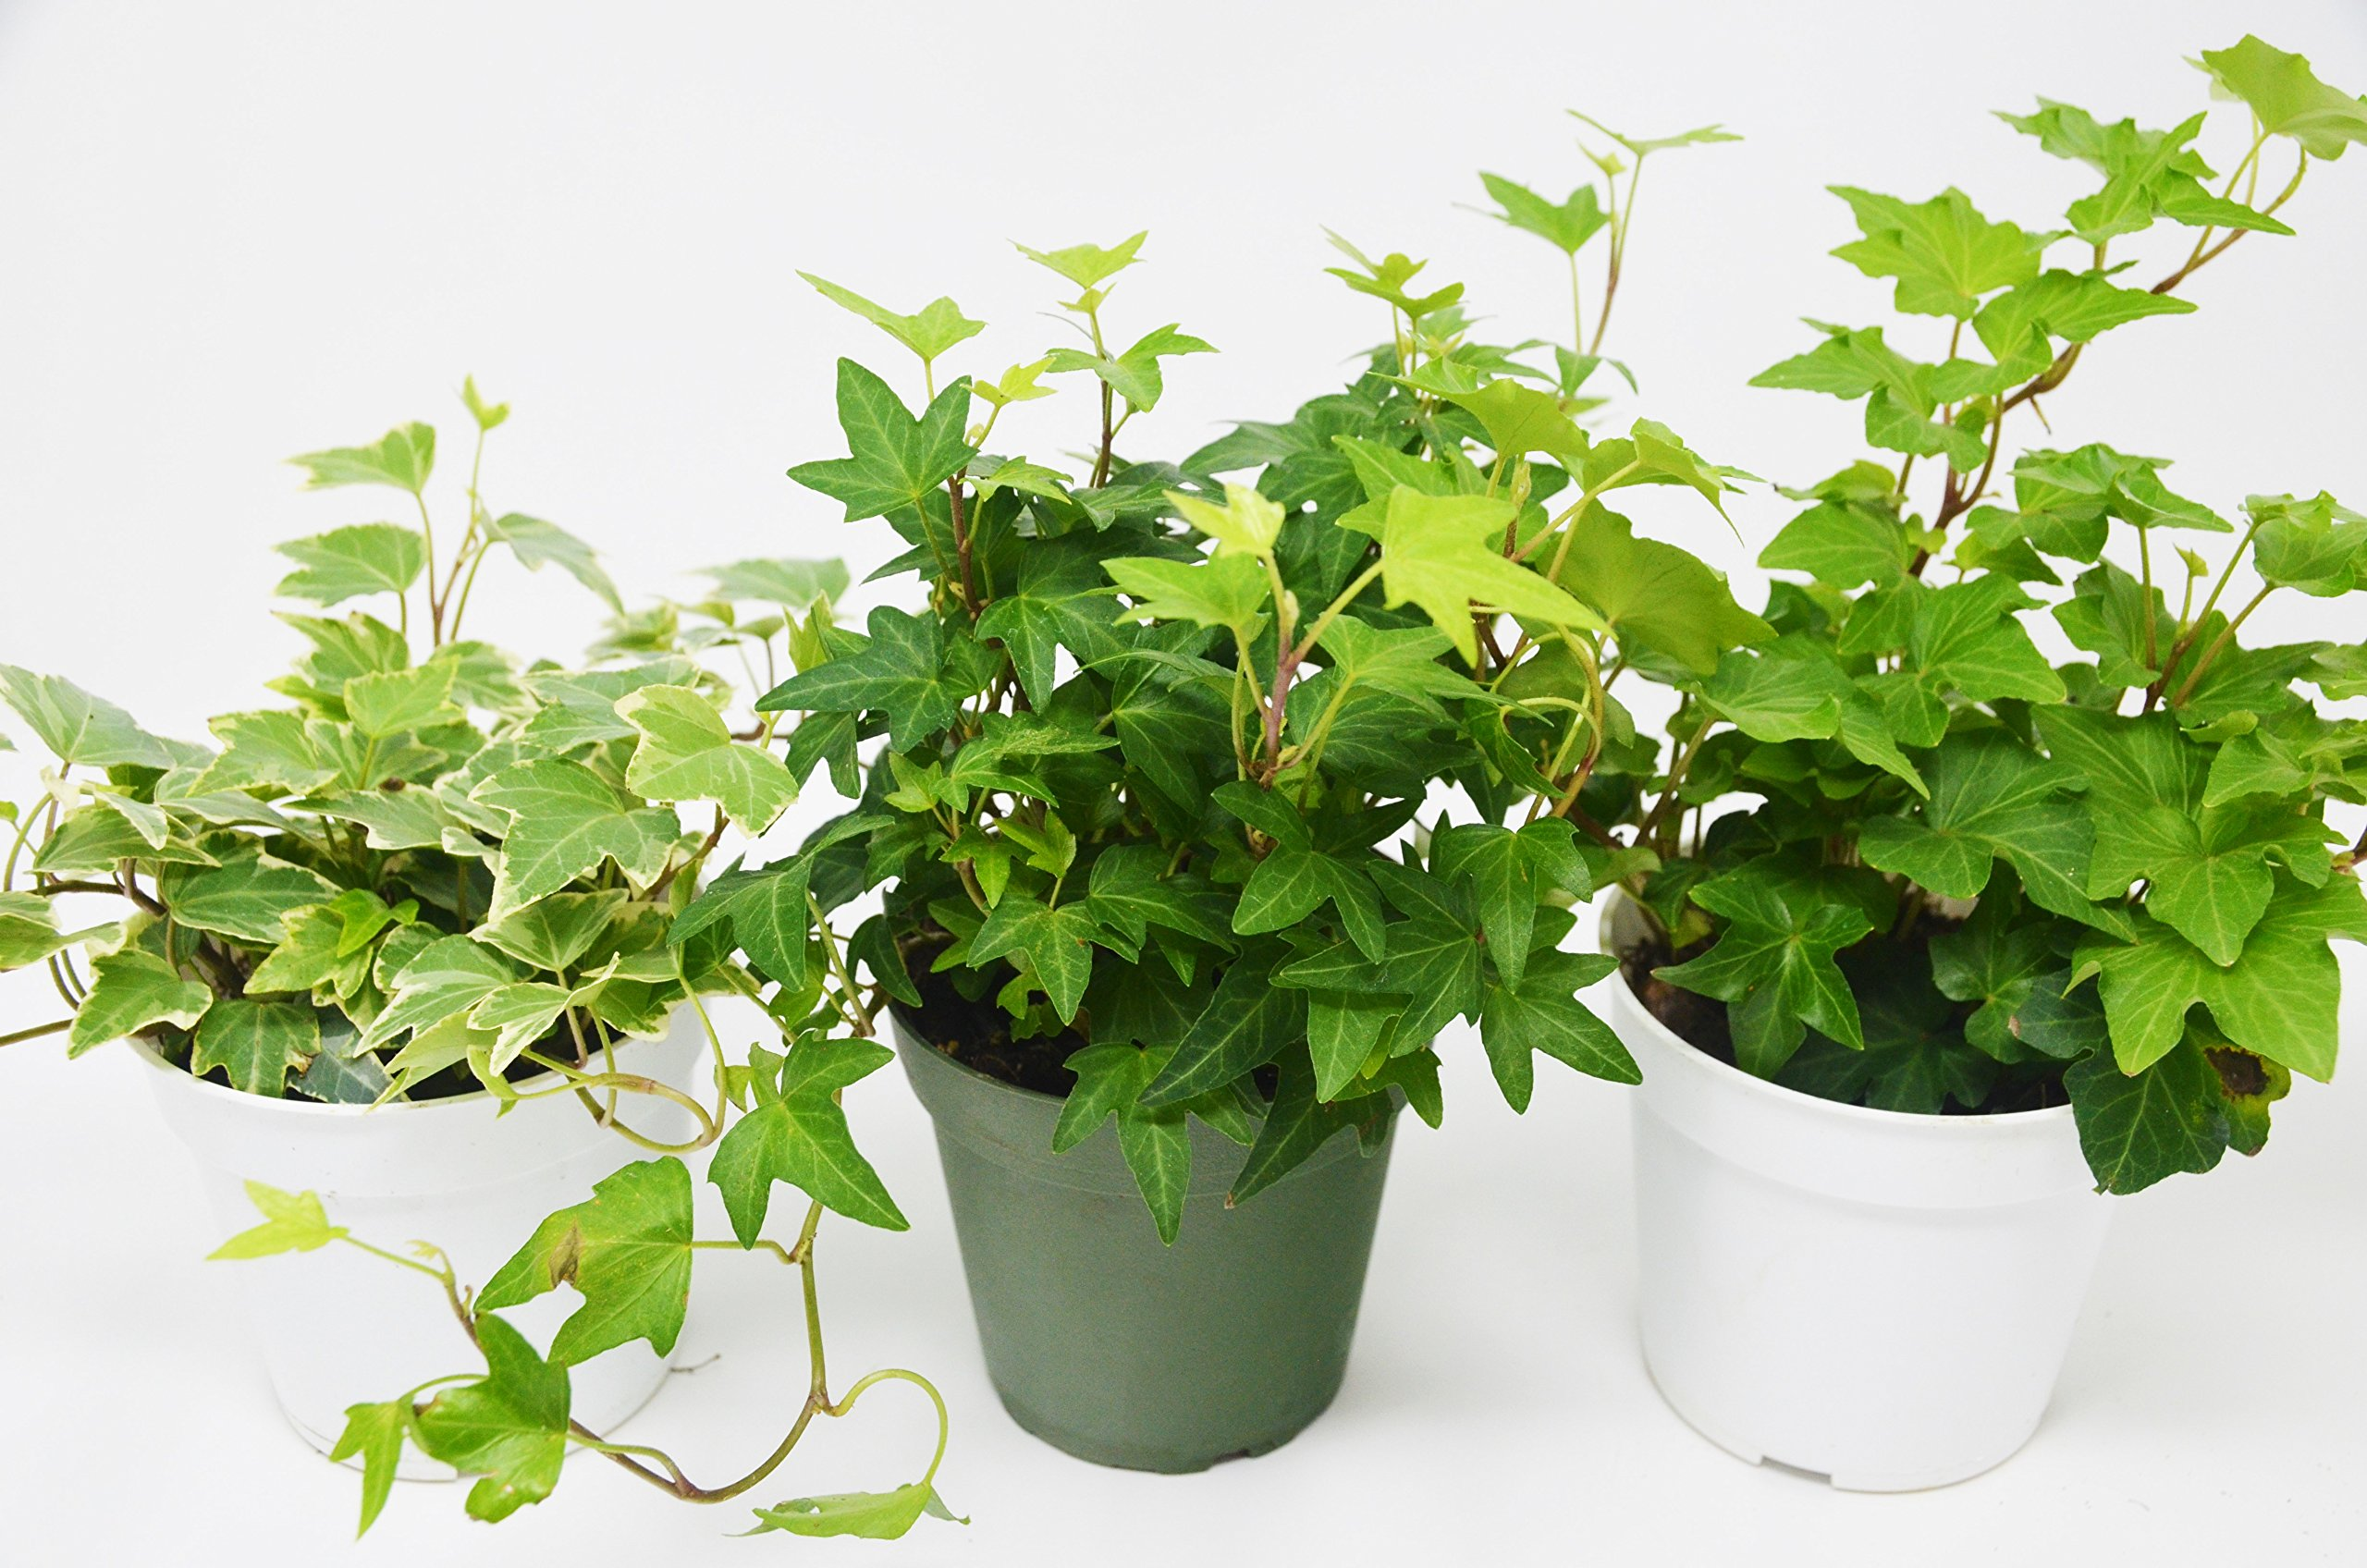 3 Different English Ivy plants- Live House Plant - FREE Care Guide - 4'' Pot - Ground Cover - by House Plant Shop